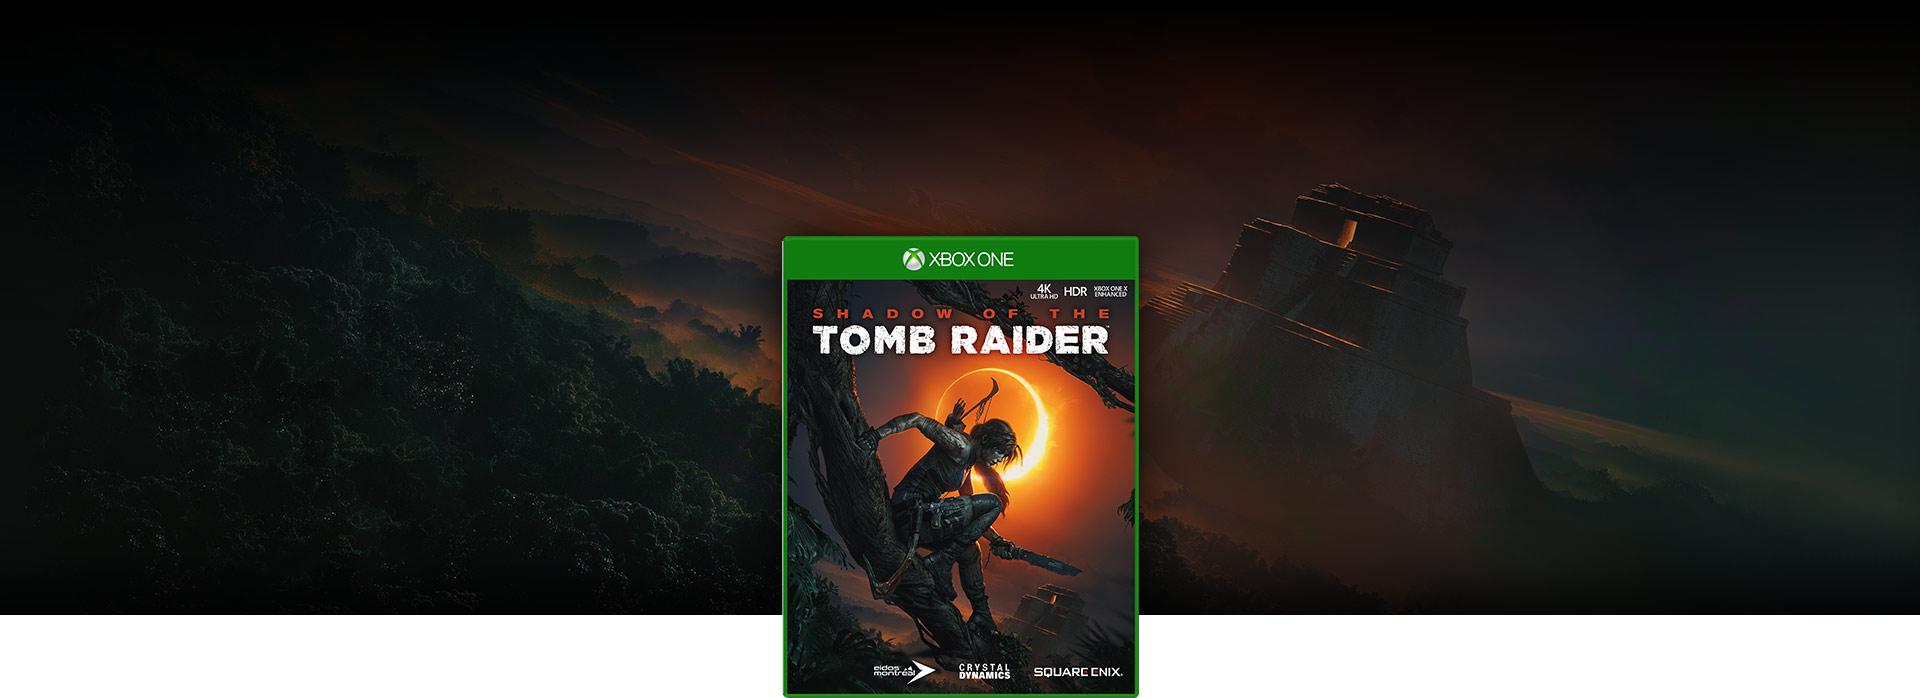 Imagen de la caja de Shadow of the Tomb Raider, templo tropical en el fondo